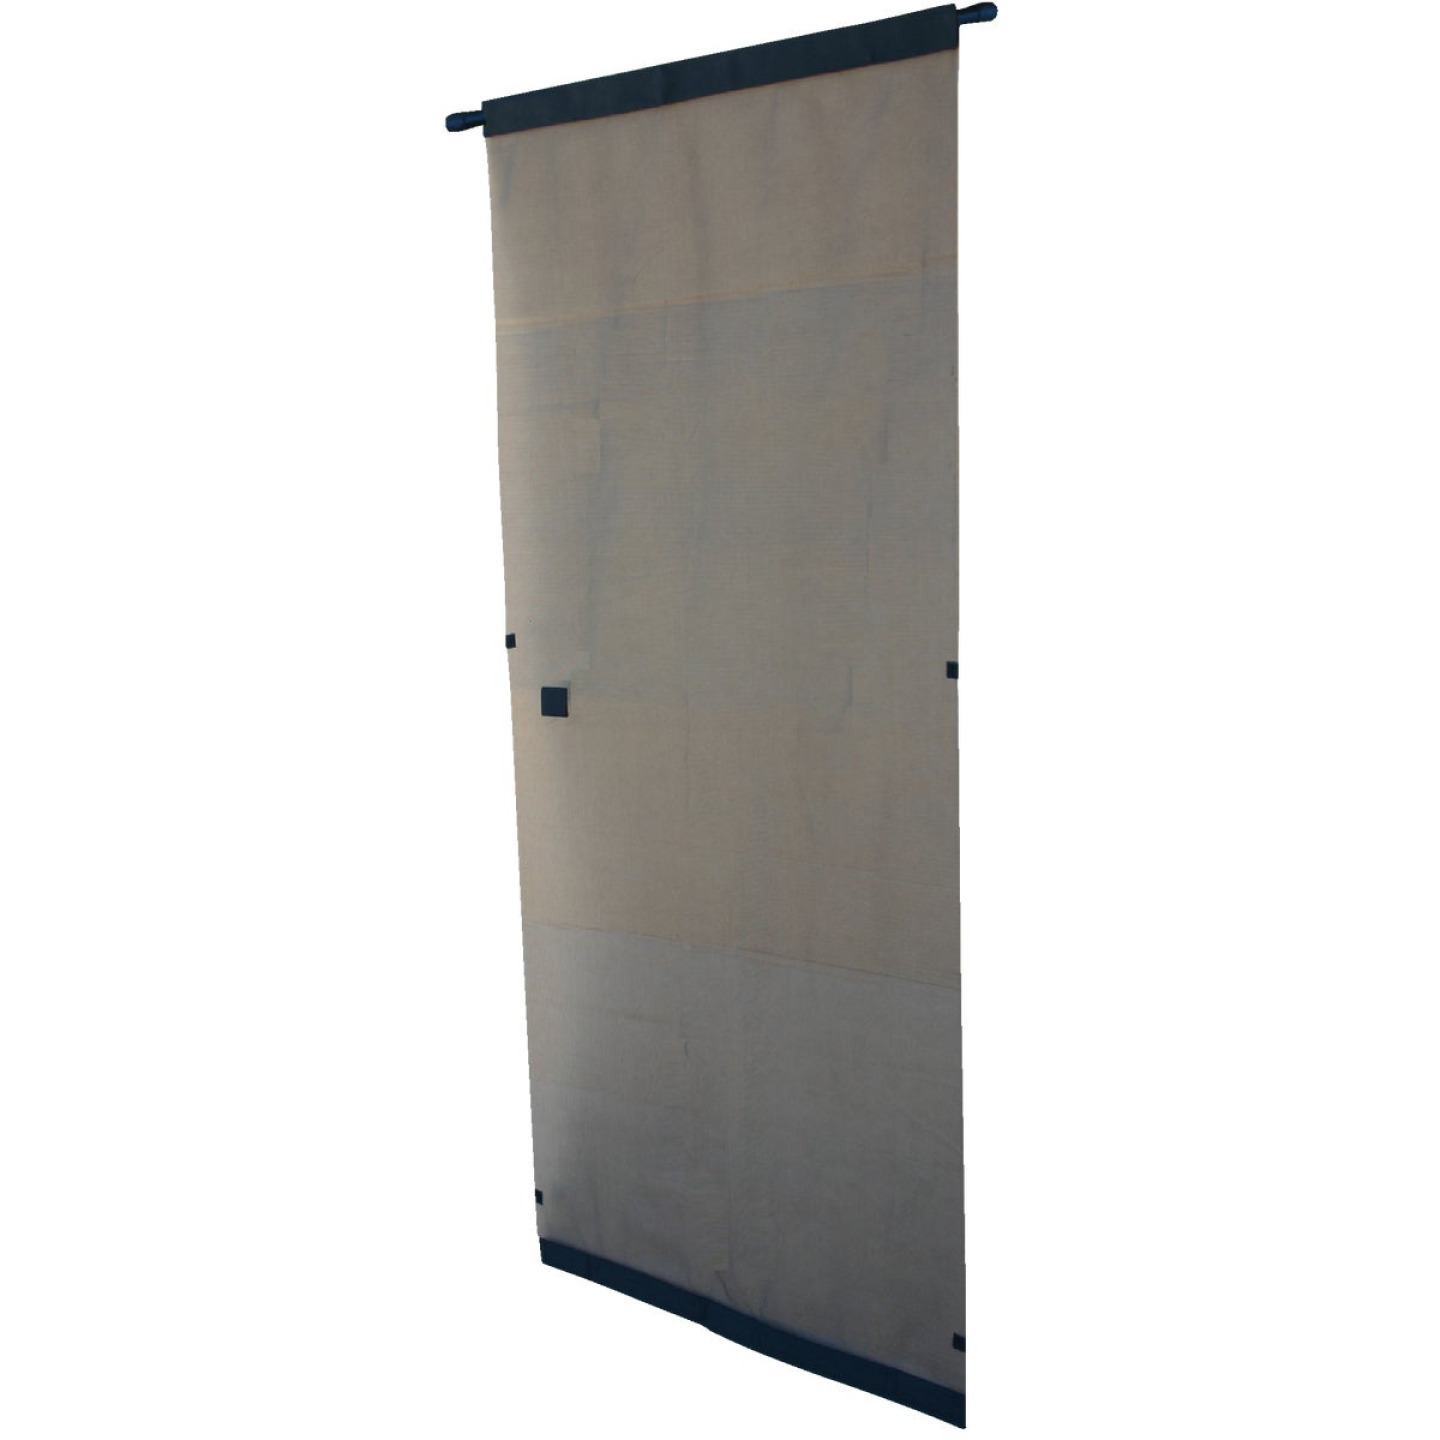 Snavely Kimberly Bay 37-1/2 In. W x 81 In. H Single Instant Door Screen Image 5